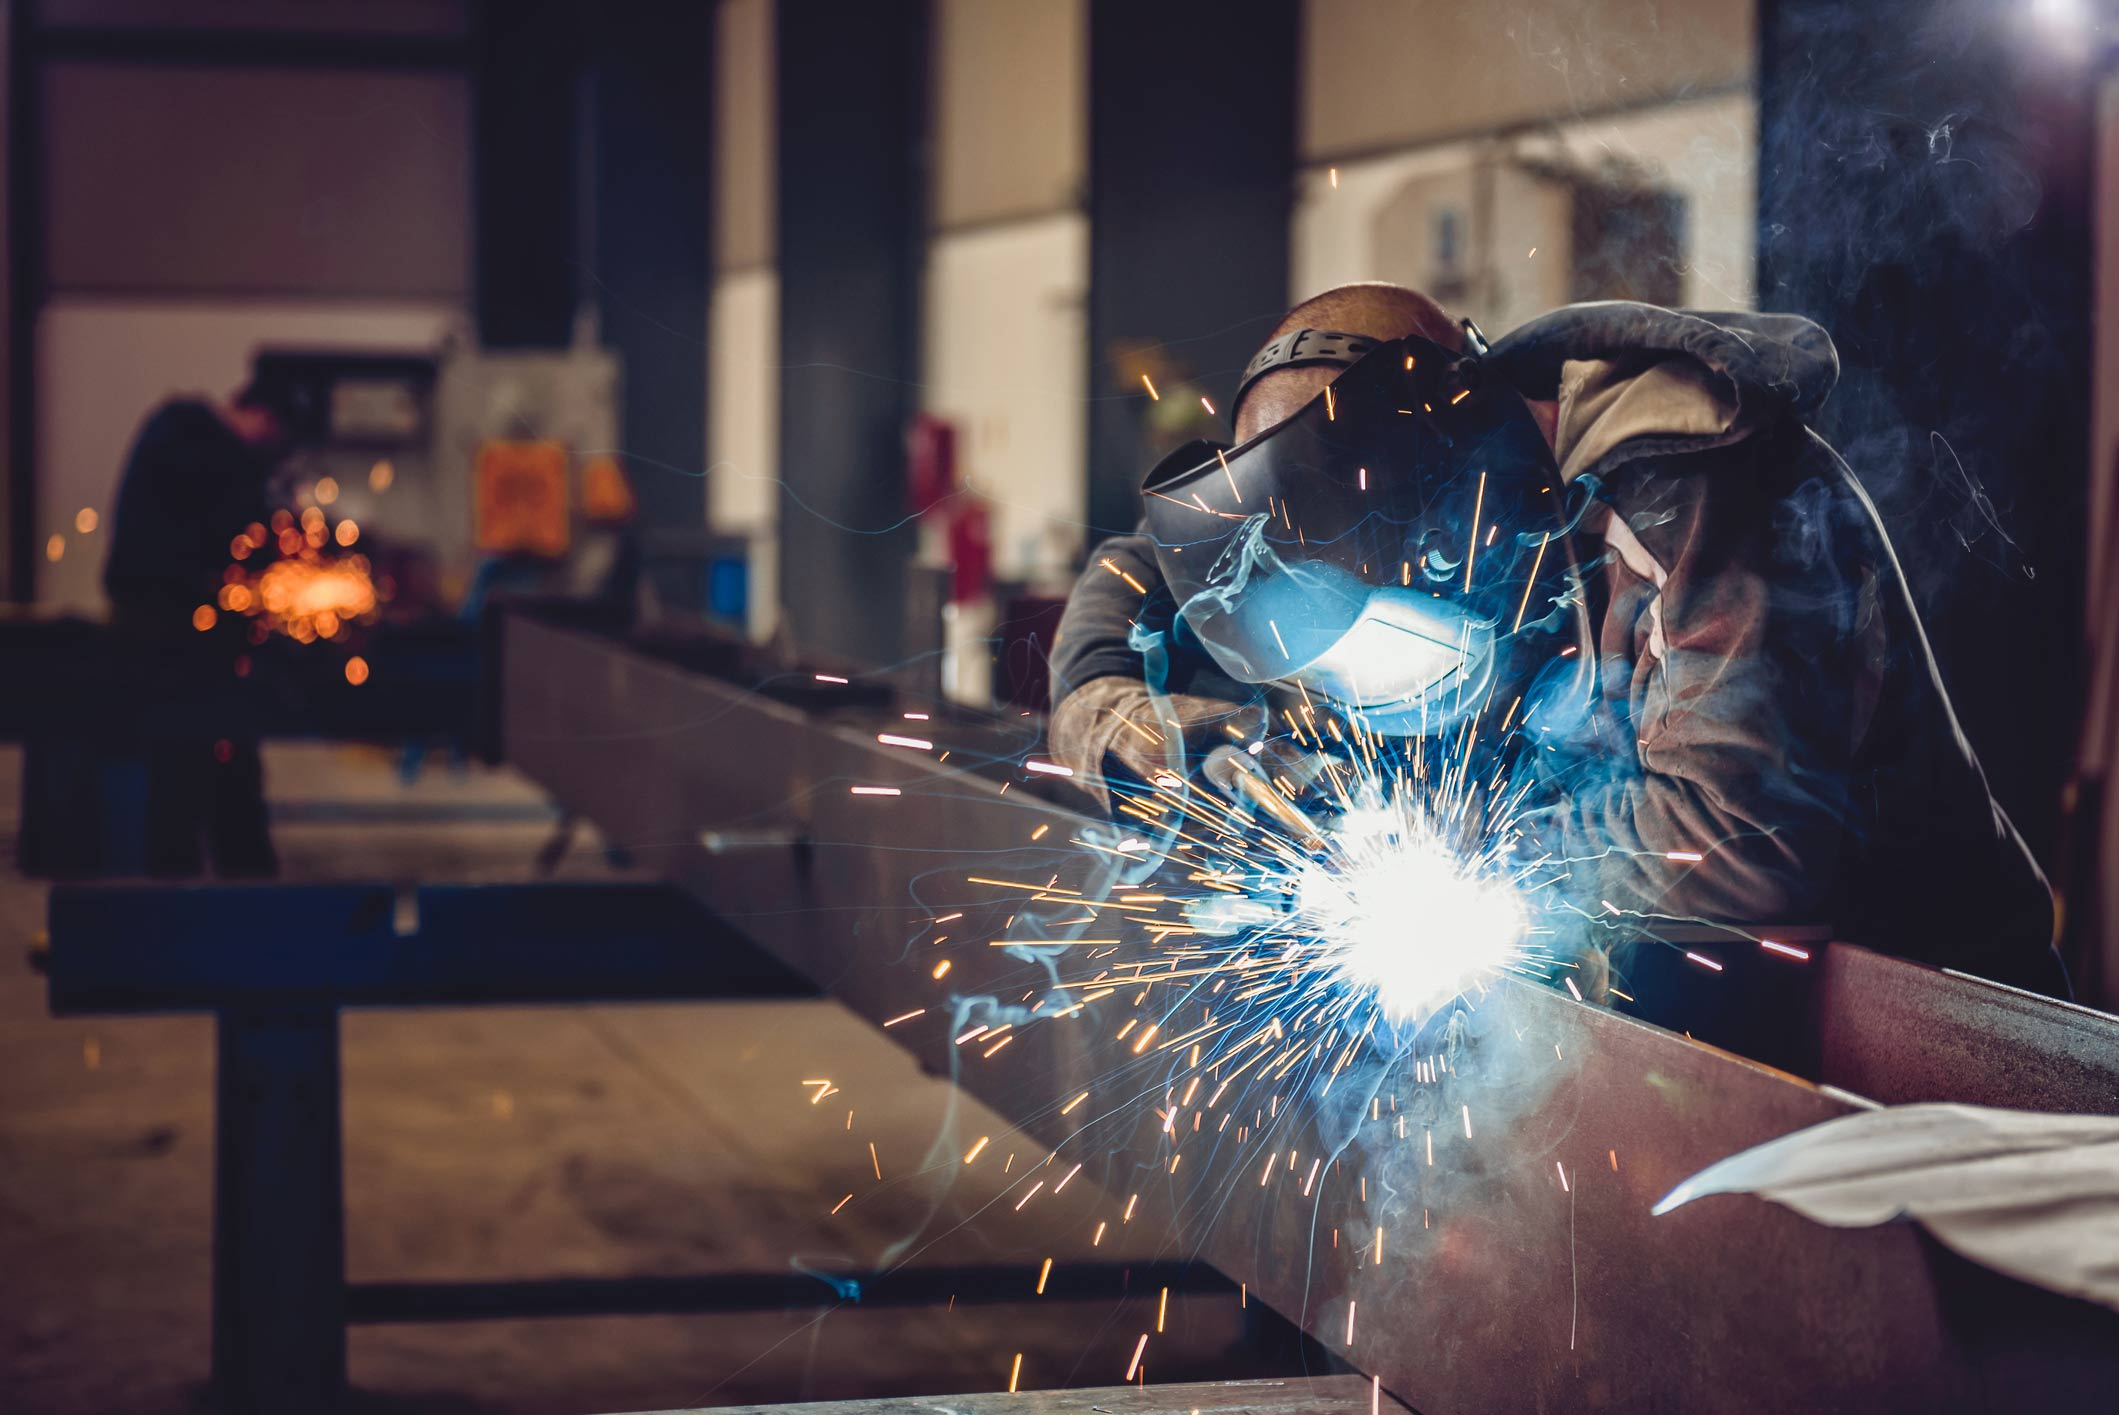 This is a photo of a welder at work